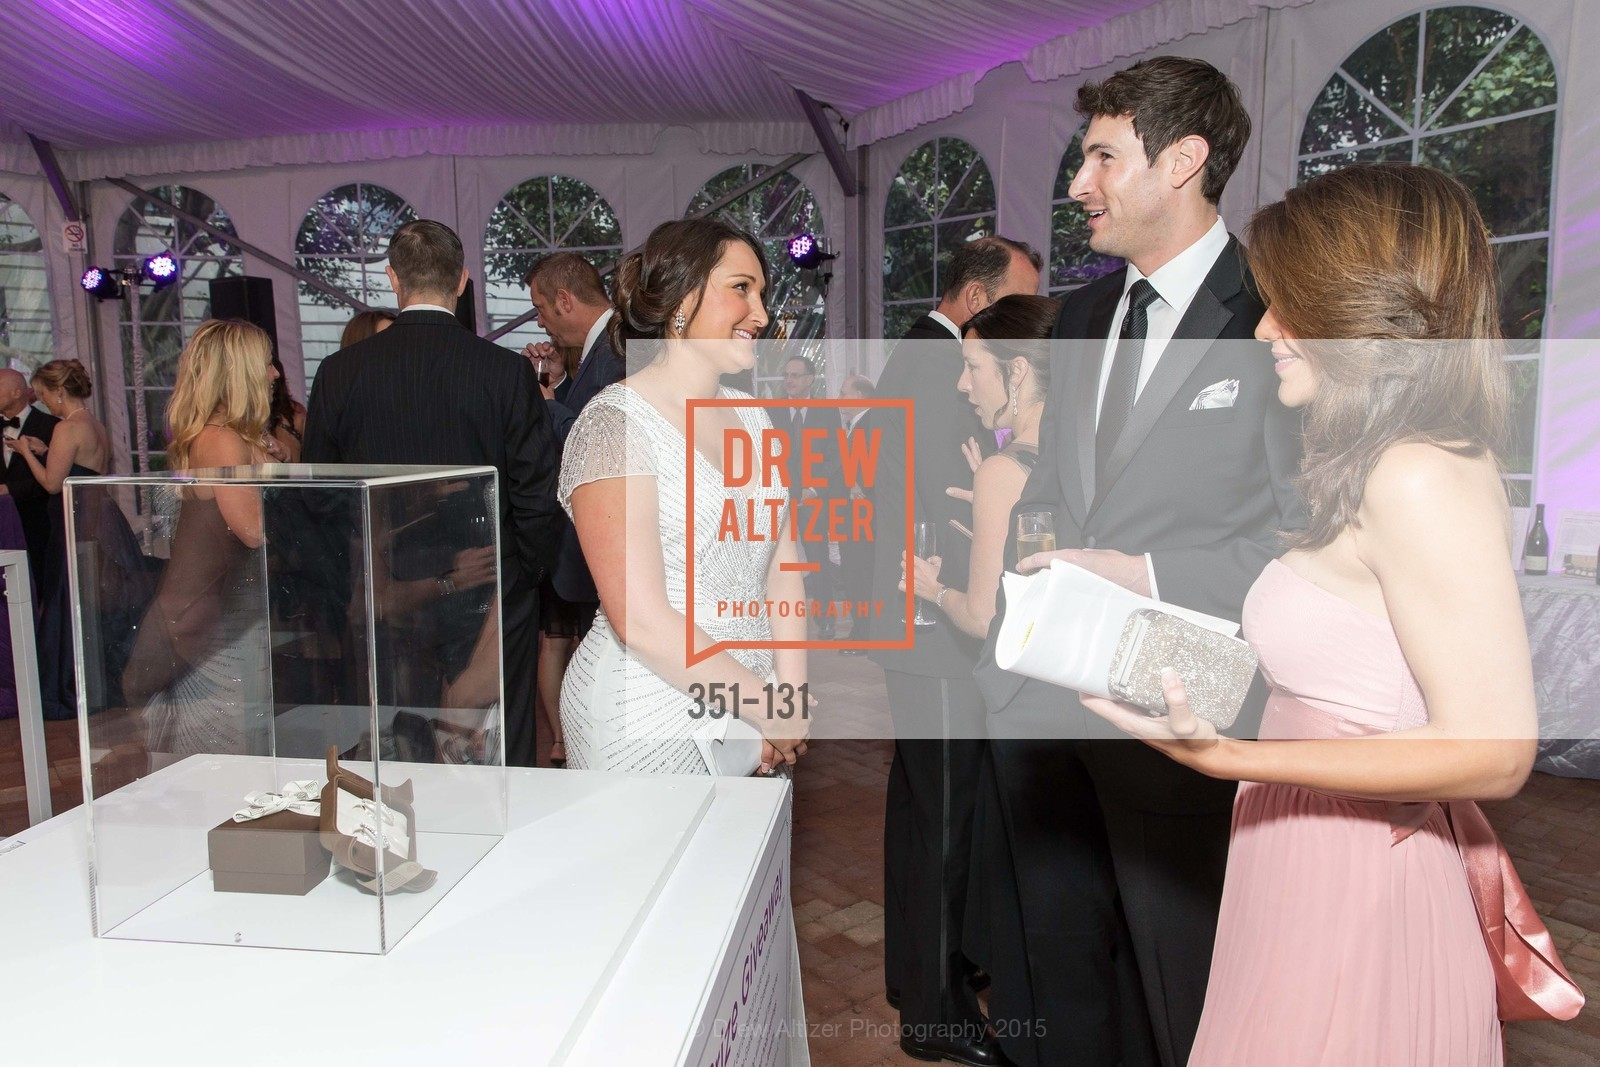 Stephanie Nelson, Sam Brock, Gabriella Dellan, JUVENILE DIABETES RESEARCH FOUNDATION  Hope Gala, The Ritz-Carlton, May 29th, 2015,Drew Altizer, Drew Altizer Photography, full-service agency, private events, San Francisco photographer, photographer california